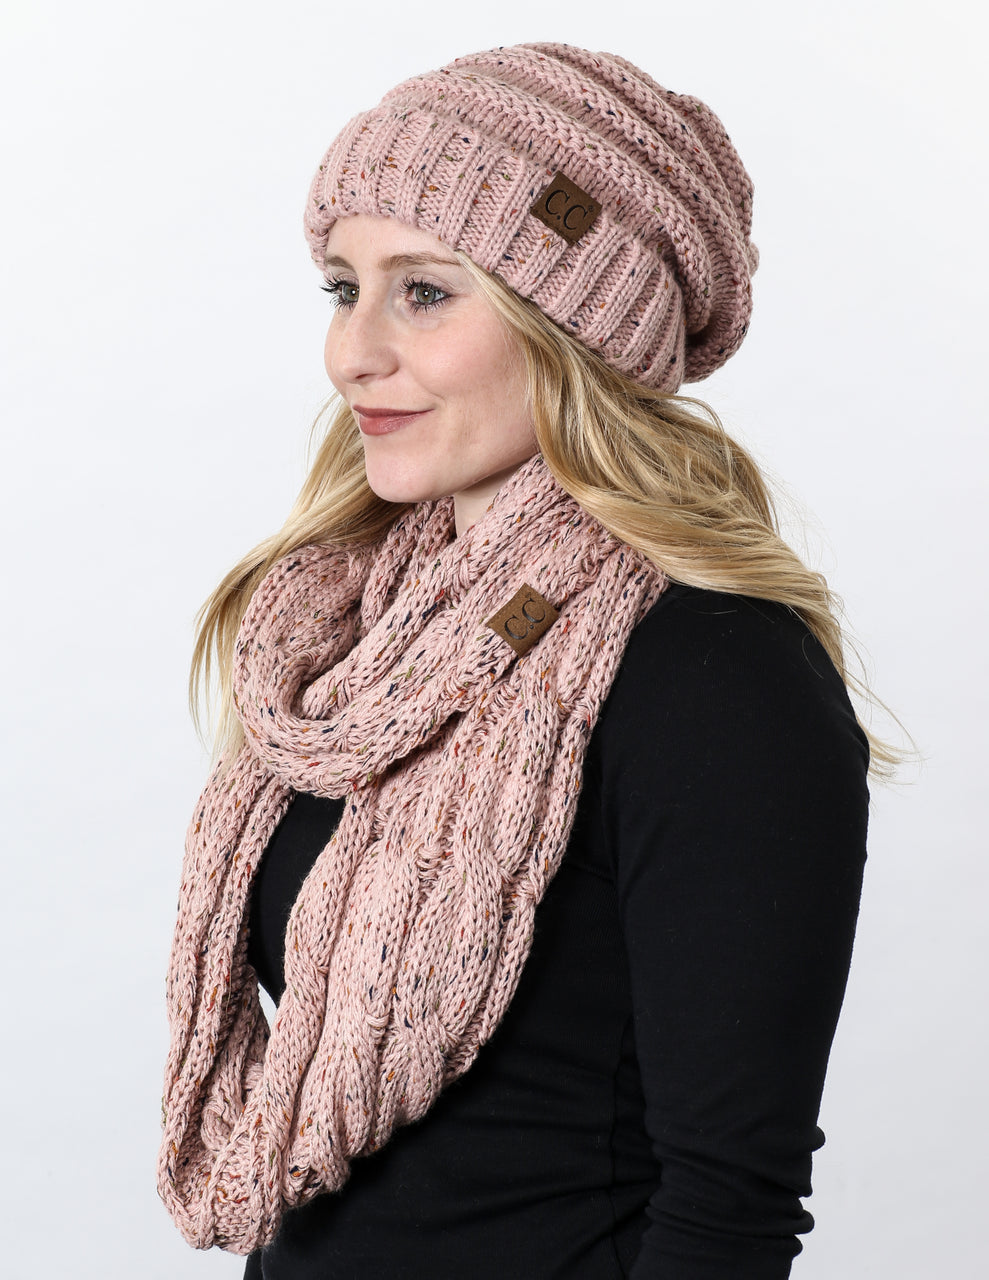 CC Oversized Slouchy Beanie Bundled With Matching Infinity Scarf - Confetti Indi Pink